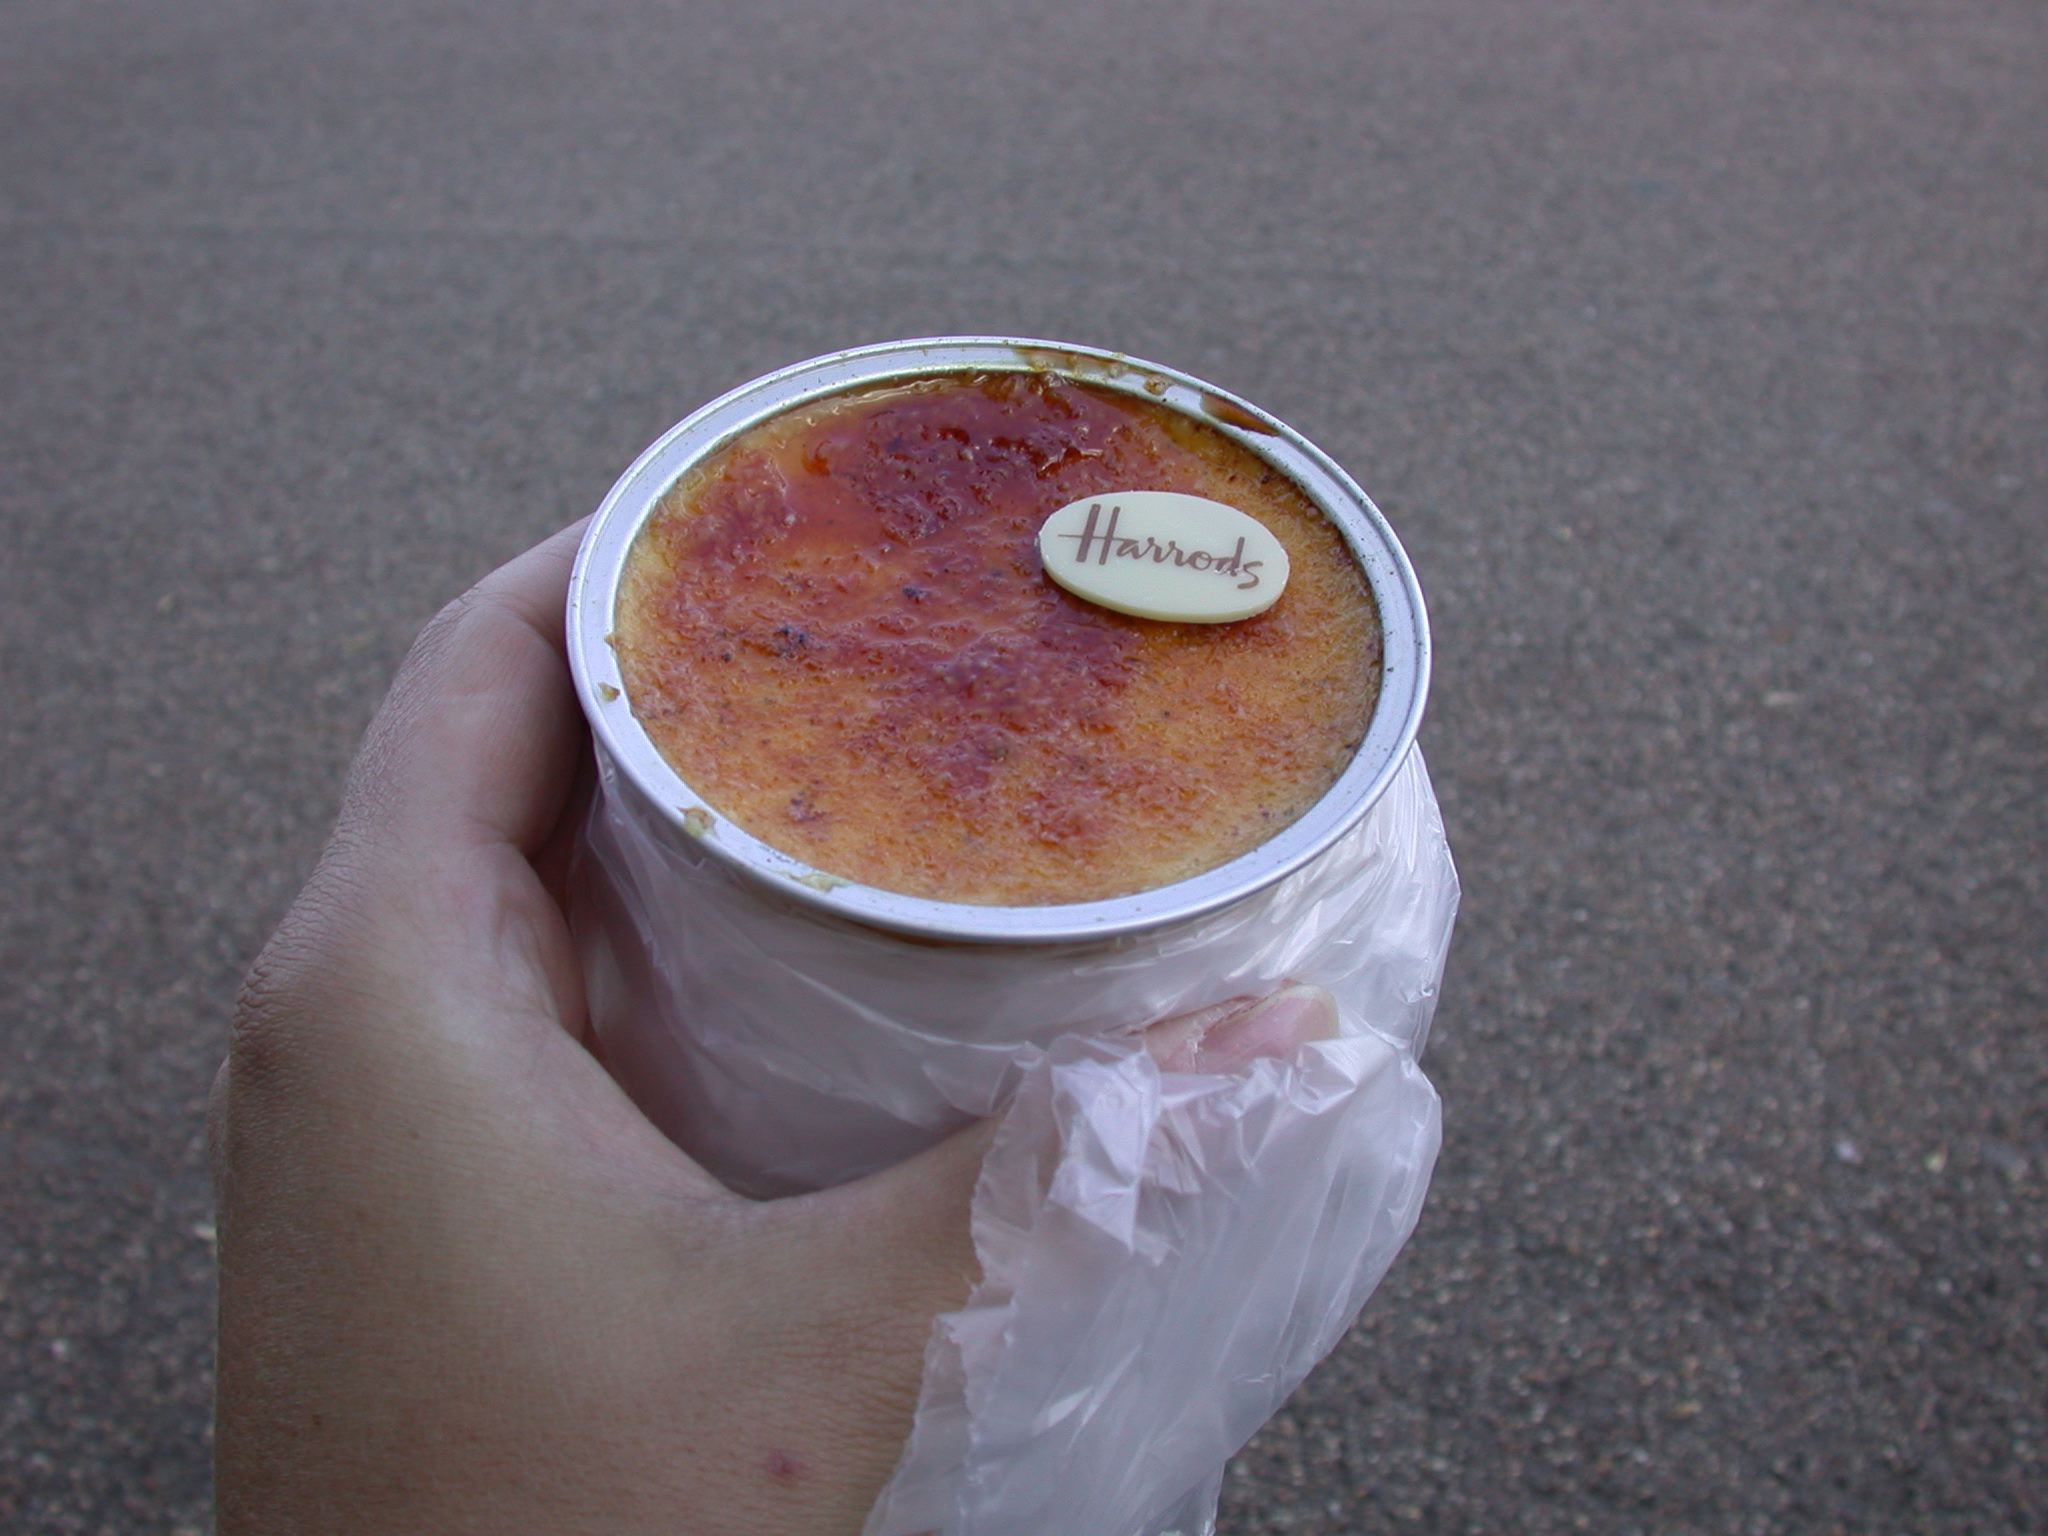 My Harrods creme brulee